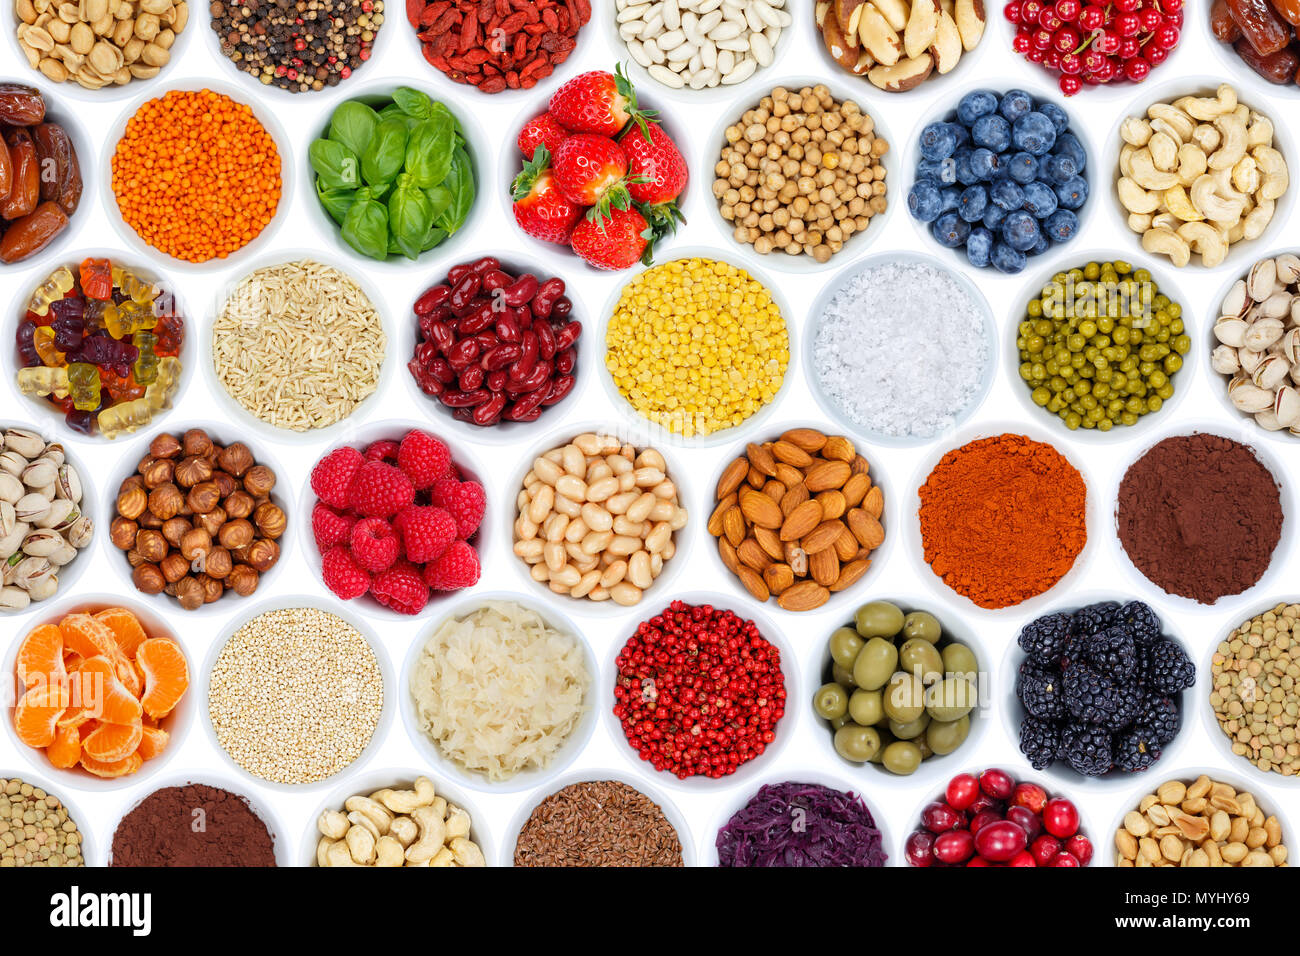 Collection of fruits and vegetables berries background from above isolated on a white background - Stock Image